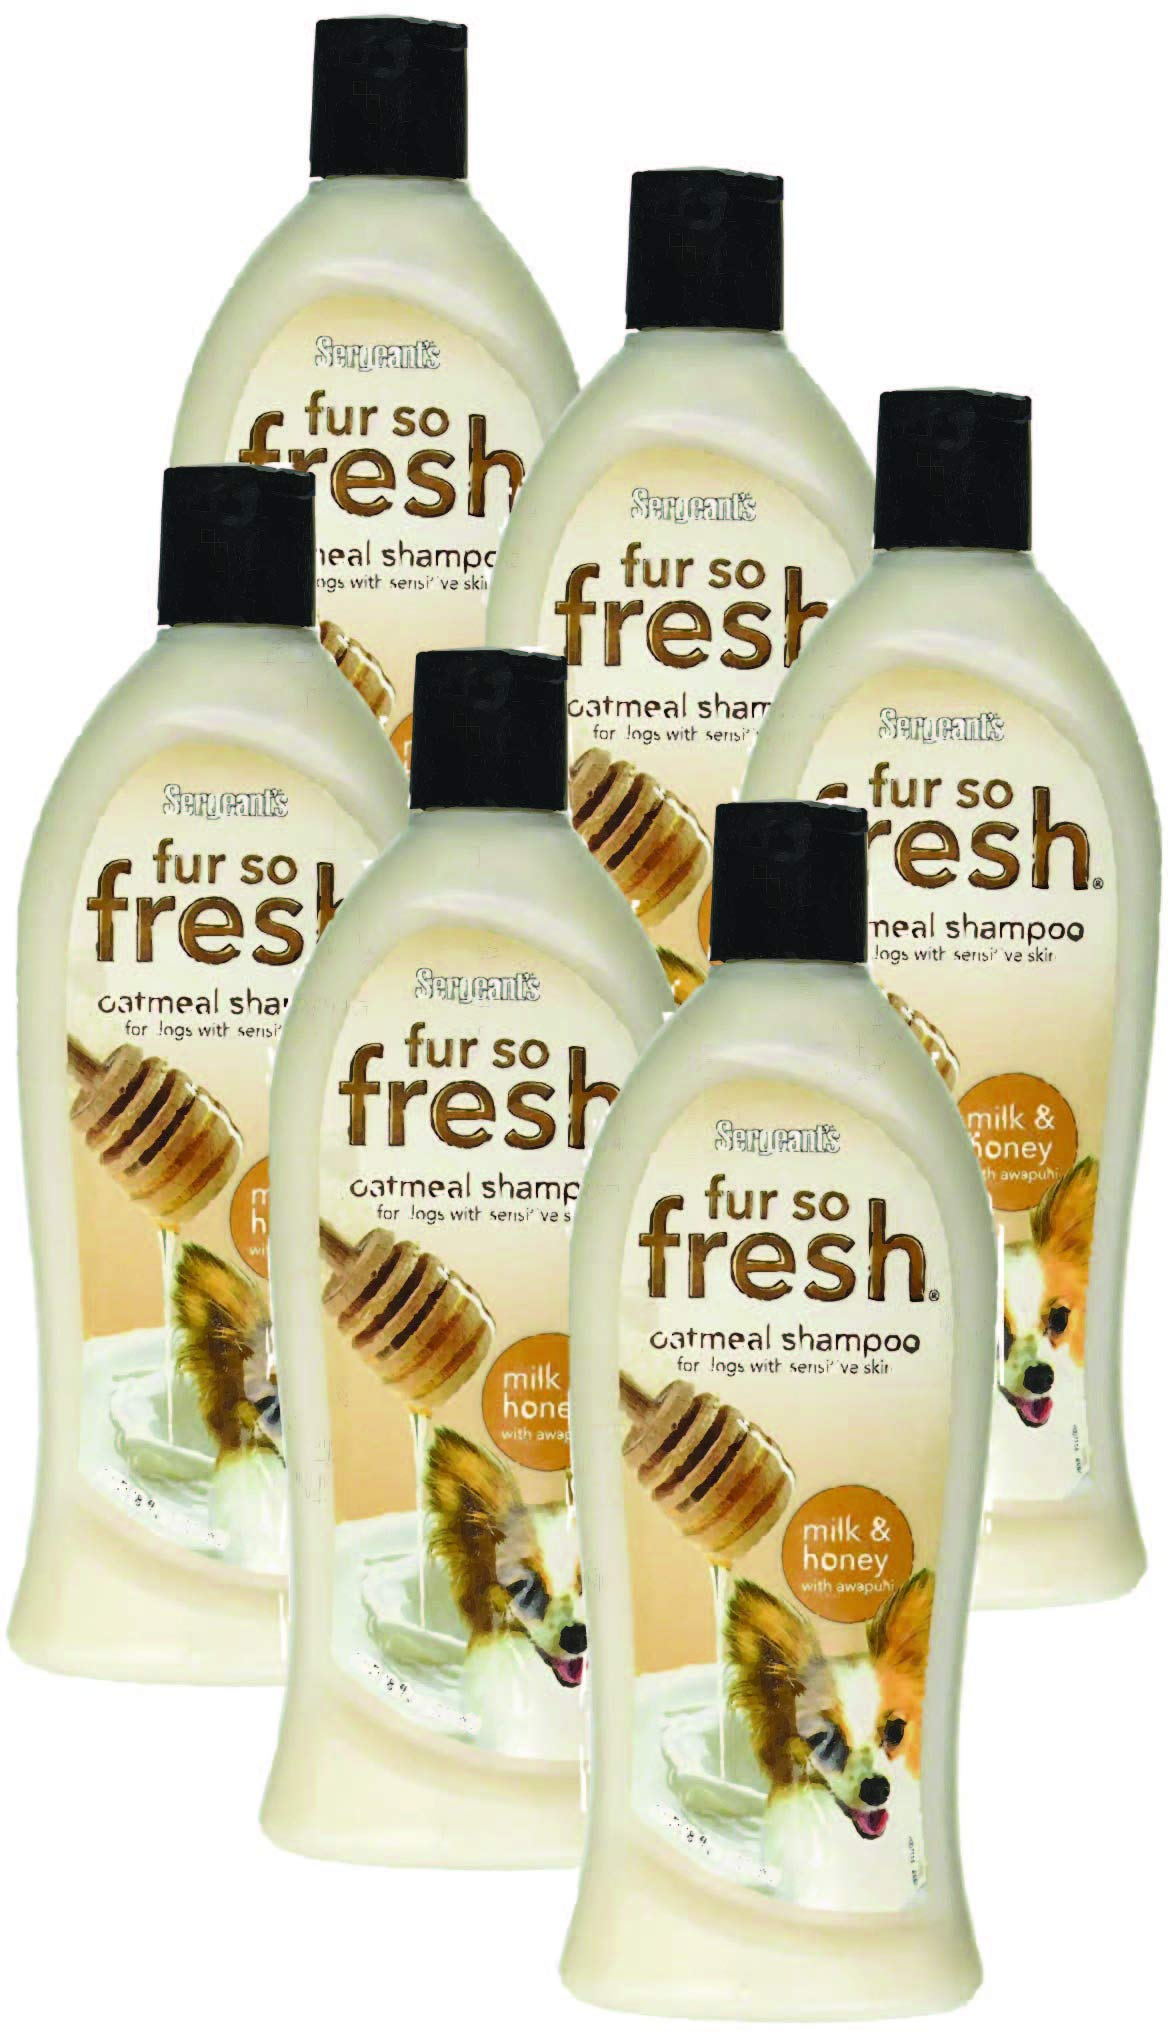 Sergeant's Fur So Fresh Shampoo Oatmeal with Awapuhi for Dogs 18 oz - Case of 6